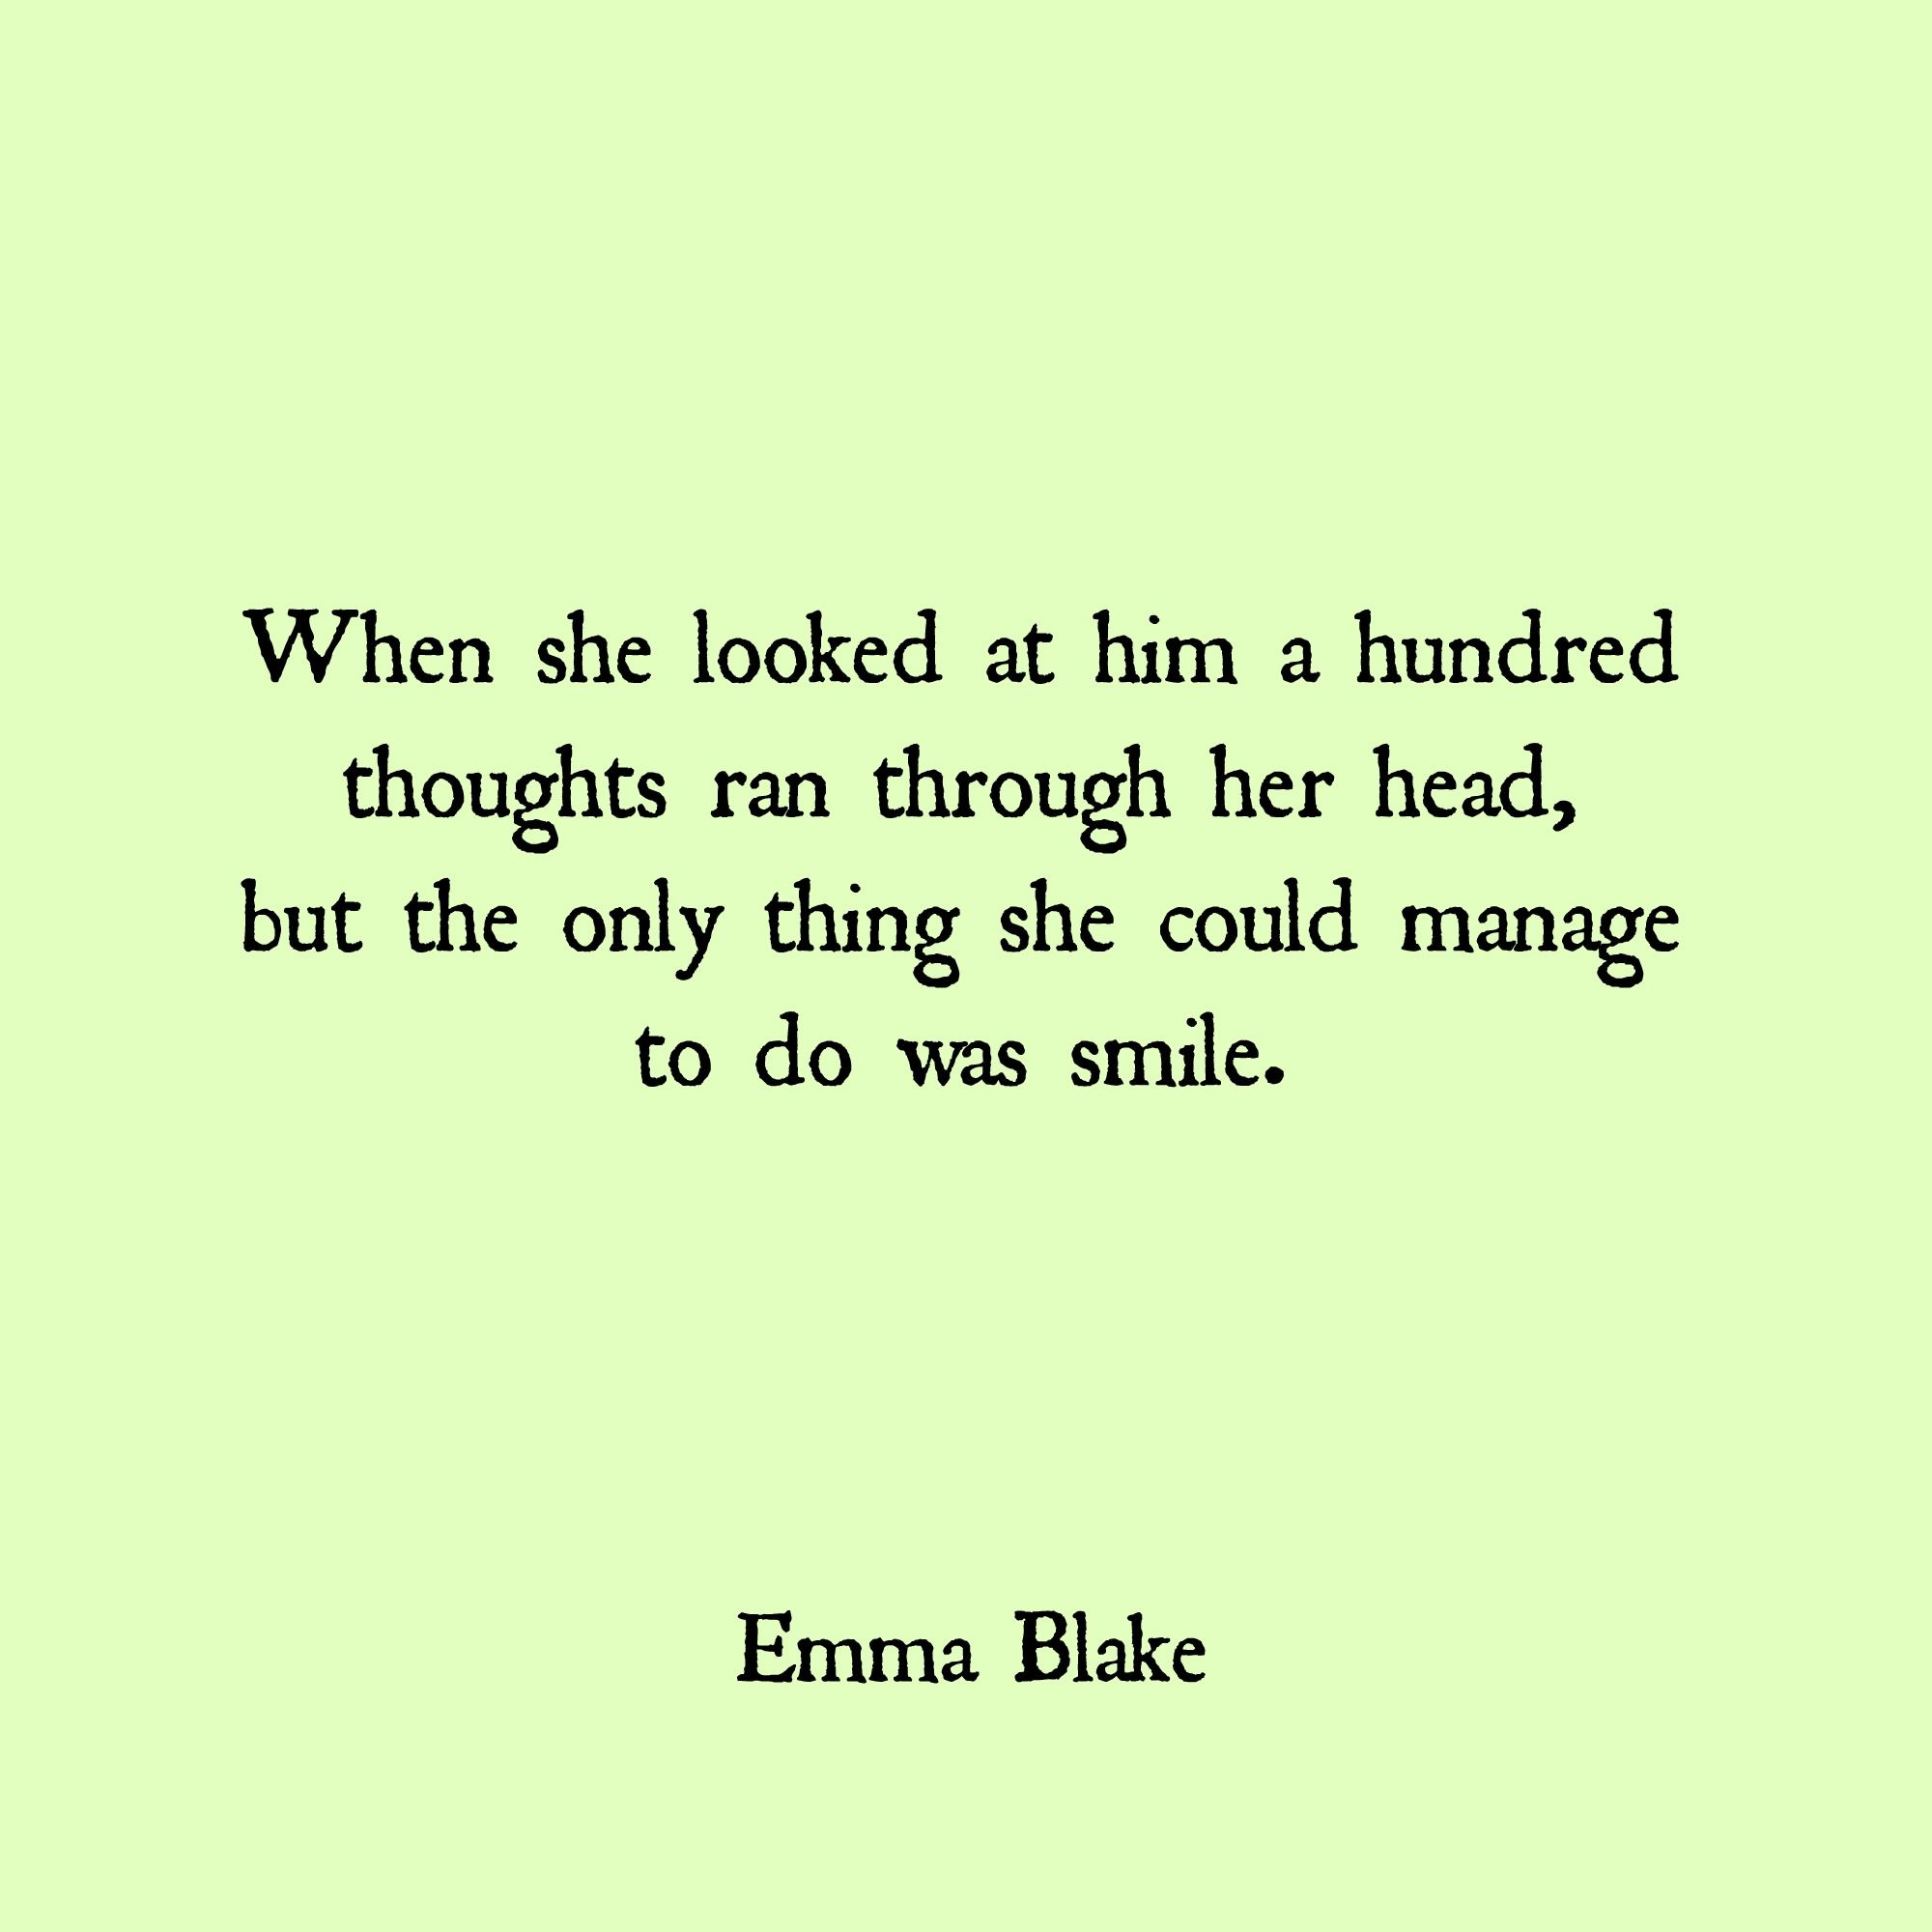 Emma Blake quote love falling in love smile quote heart mind | My